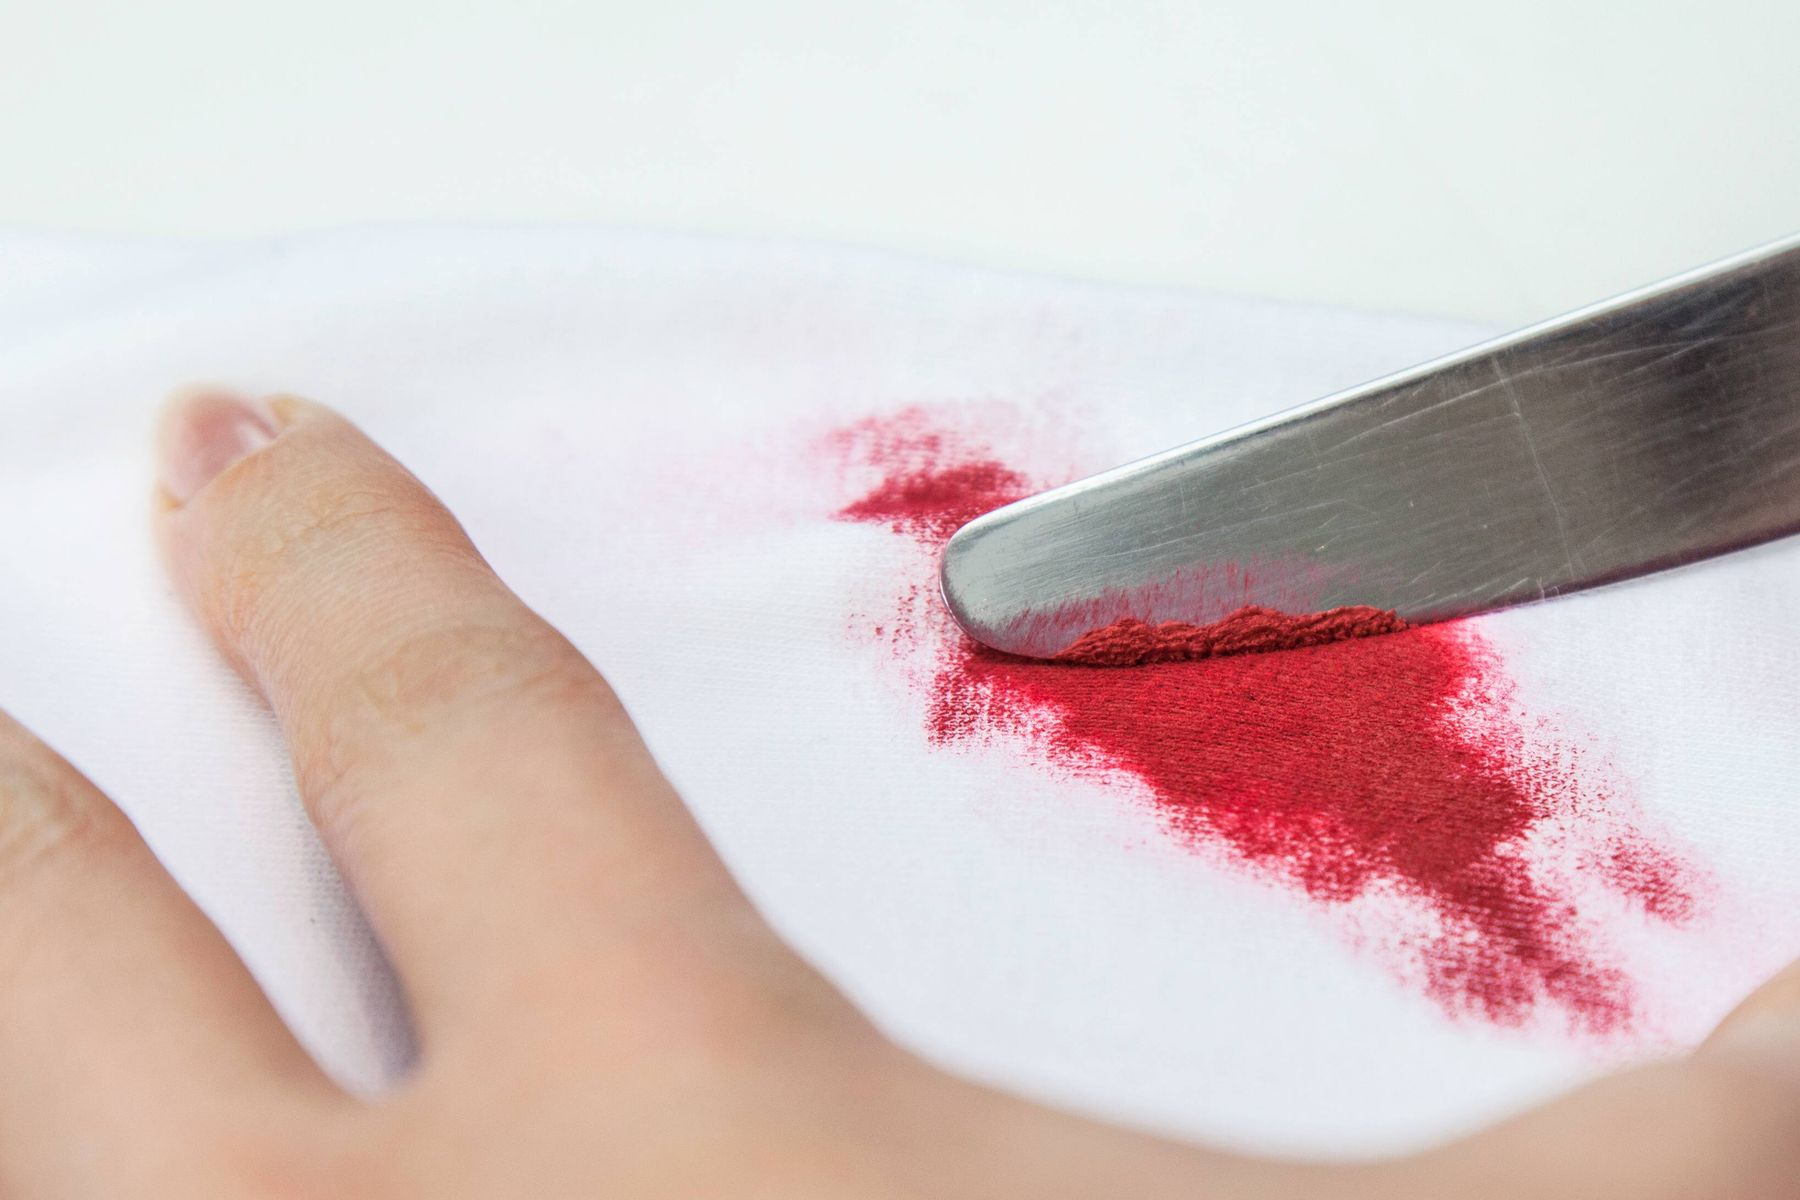 removing a red stain on white fabric with a knife